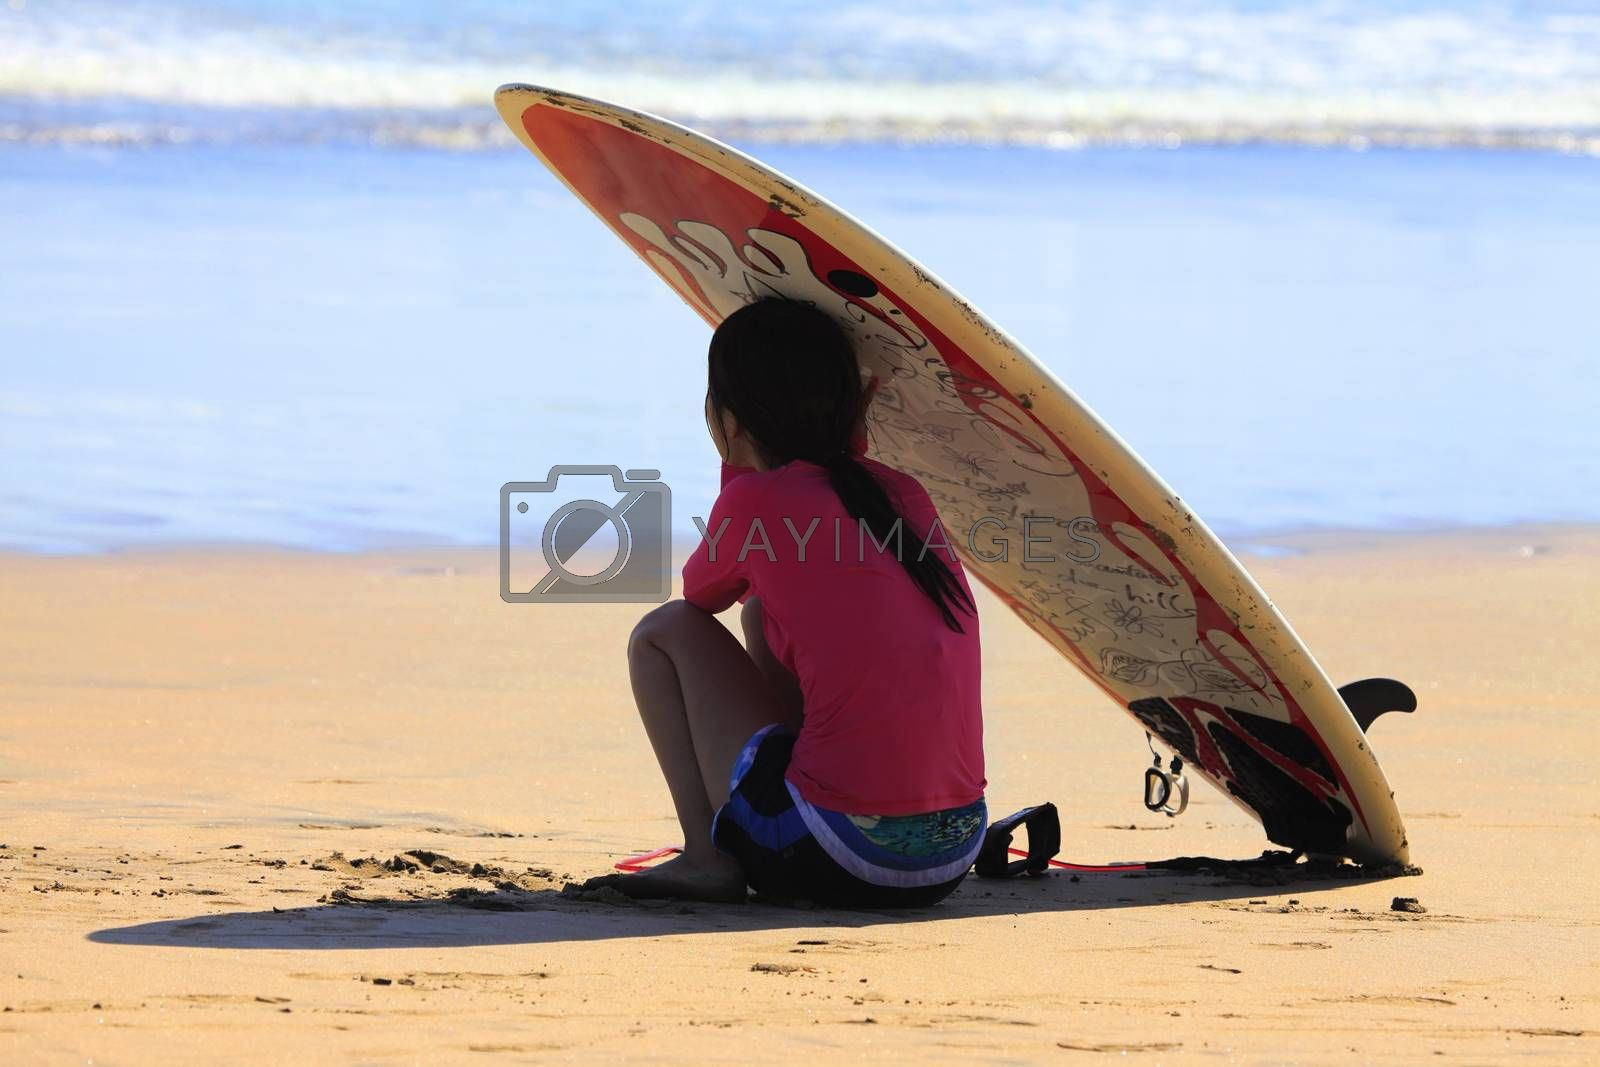 Bali, Indonesia - July 15, 2010: unknown surfer girl resting on the ocean. Kuta, Bali